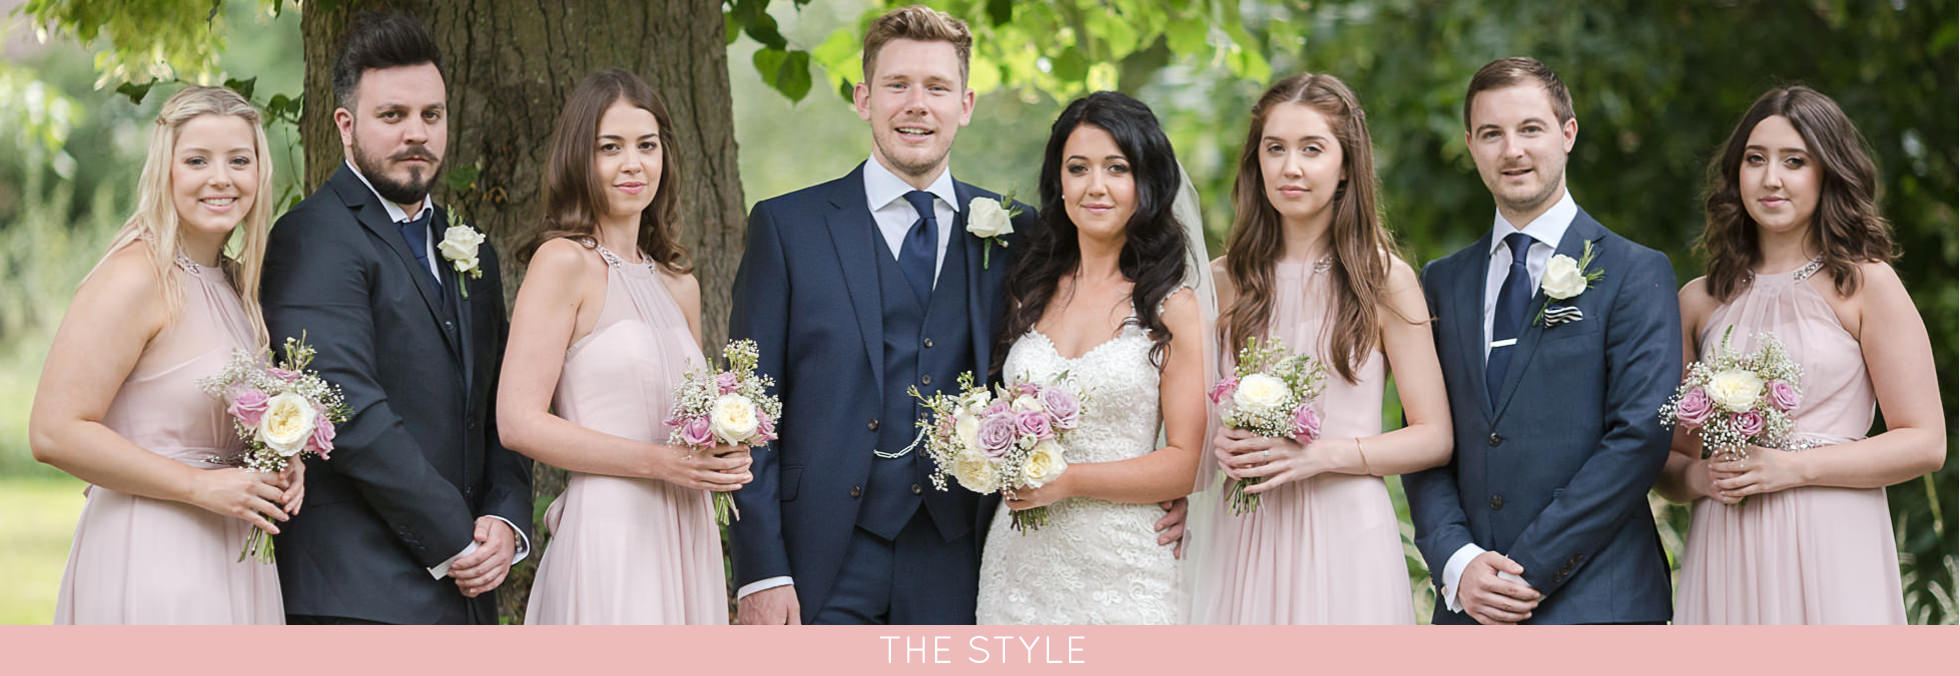 wedding style with pink colour scheme